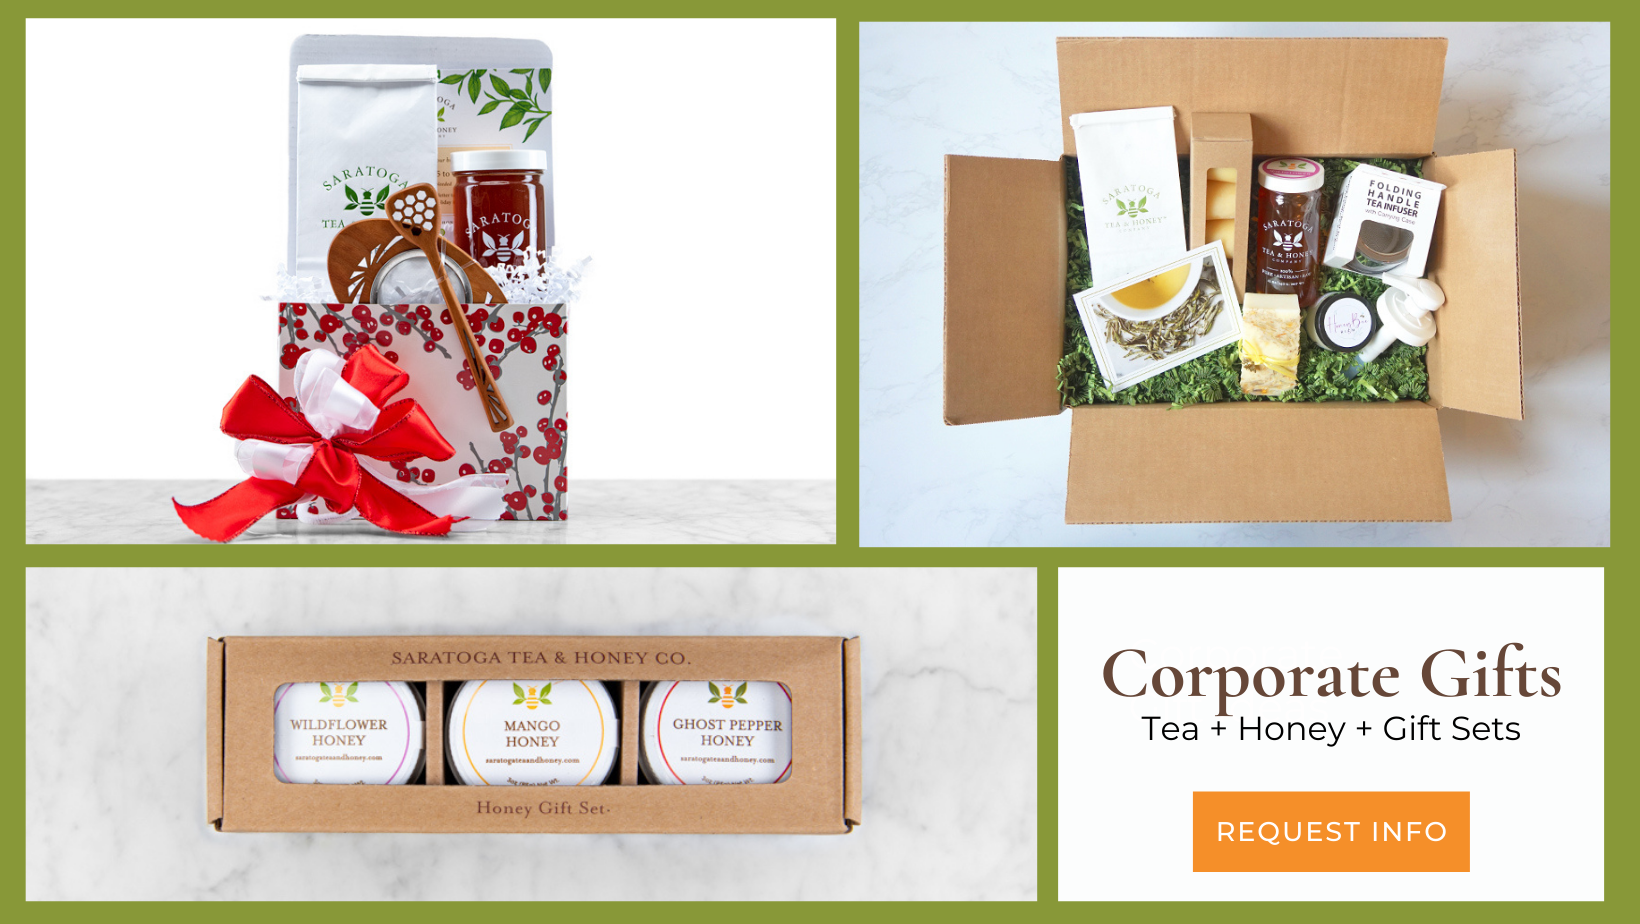 Corporate Gifts Page Banner Showing Collage Featuring Tea and Honey Gift Sets